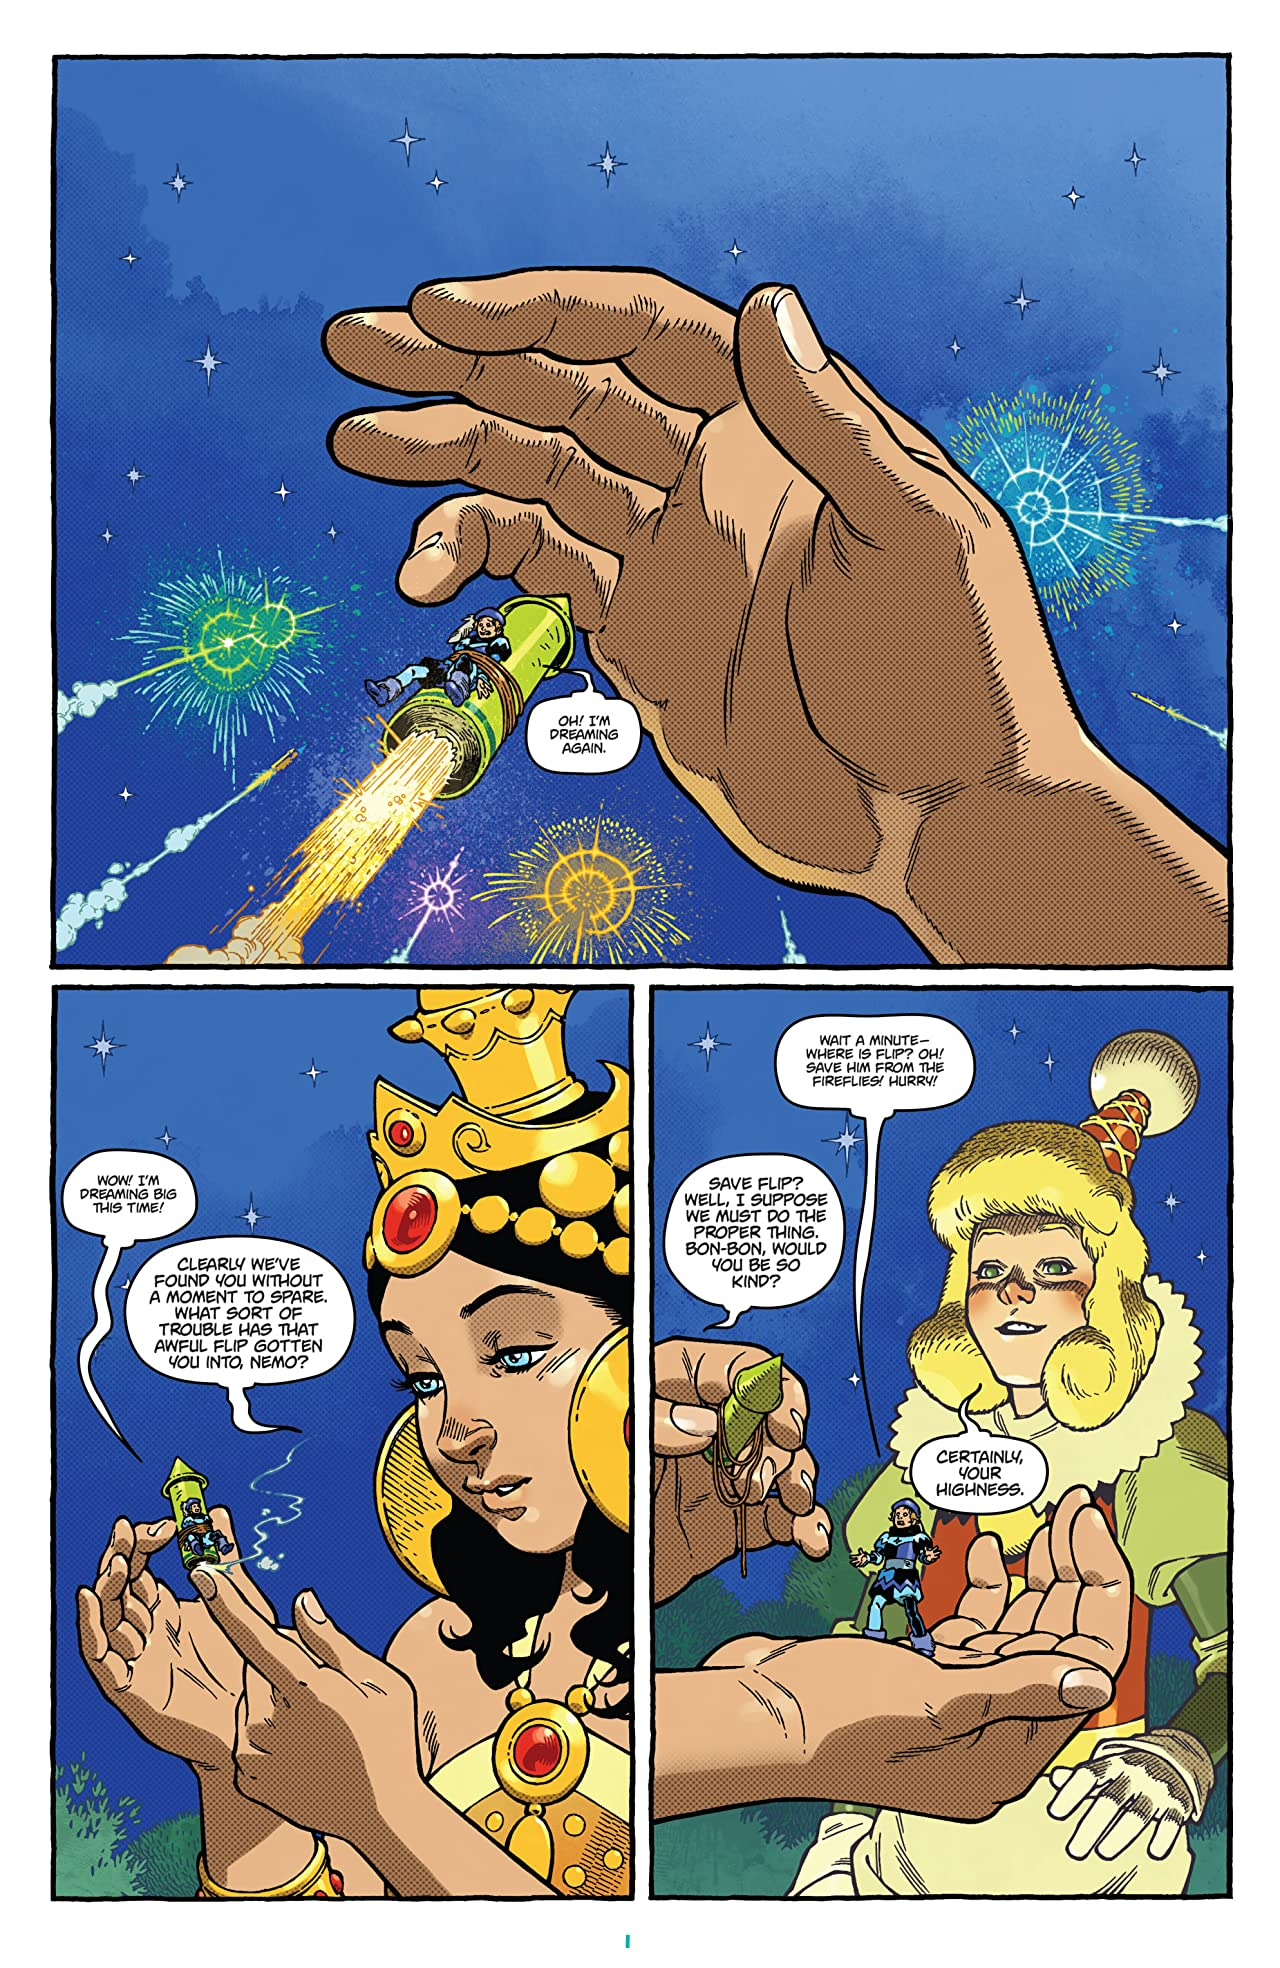 Little Nemo: Return To Slumberland #4